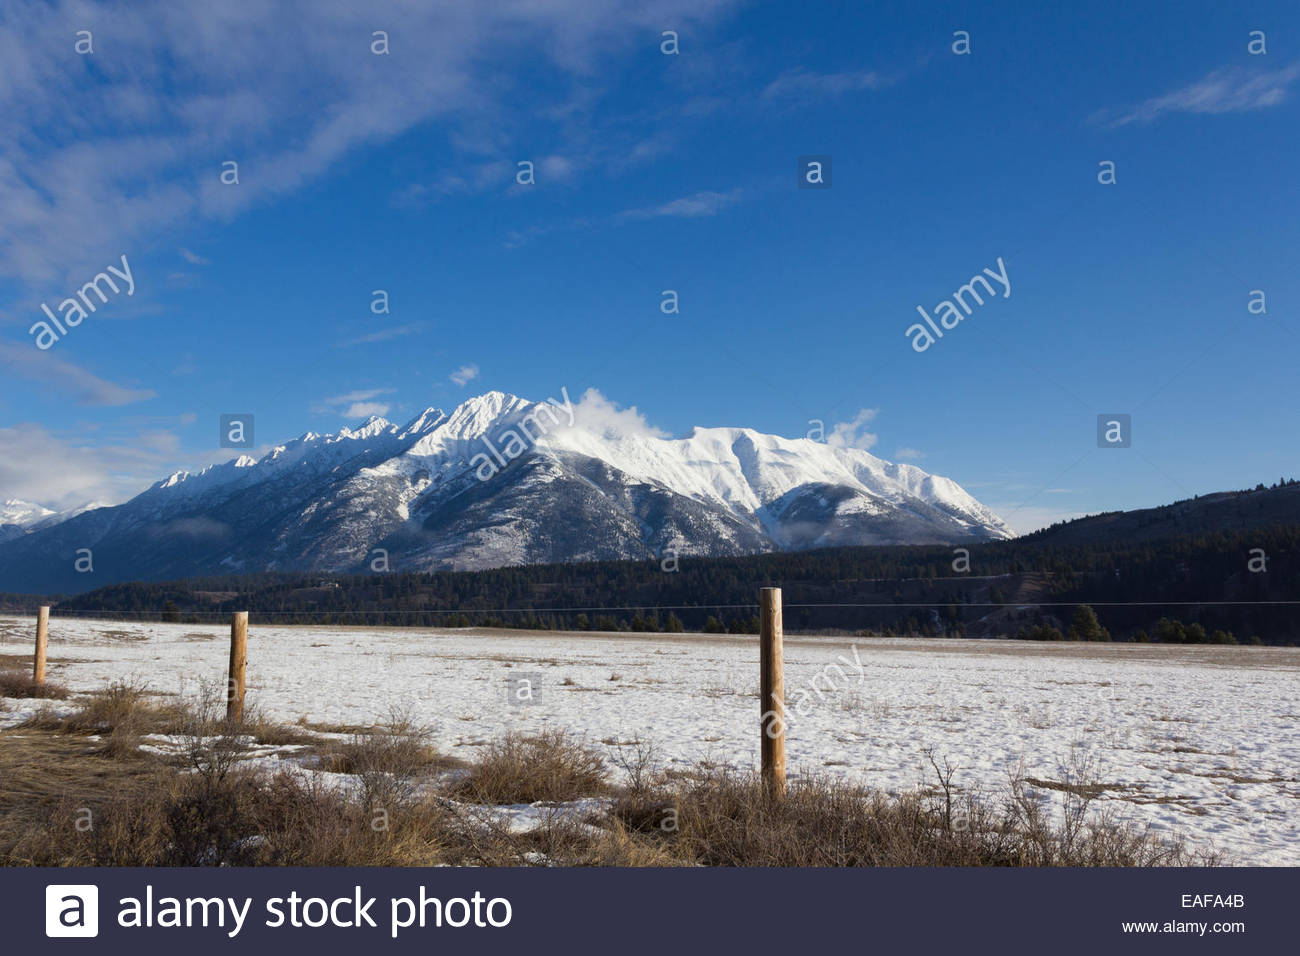 West Rocky Mountains, Mountain Peak West of Fernie, BC - Stock Image